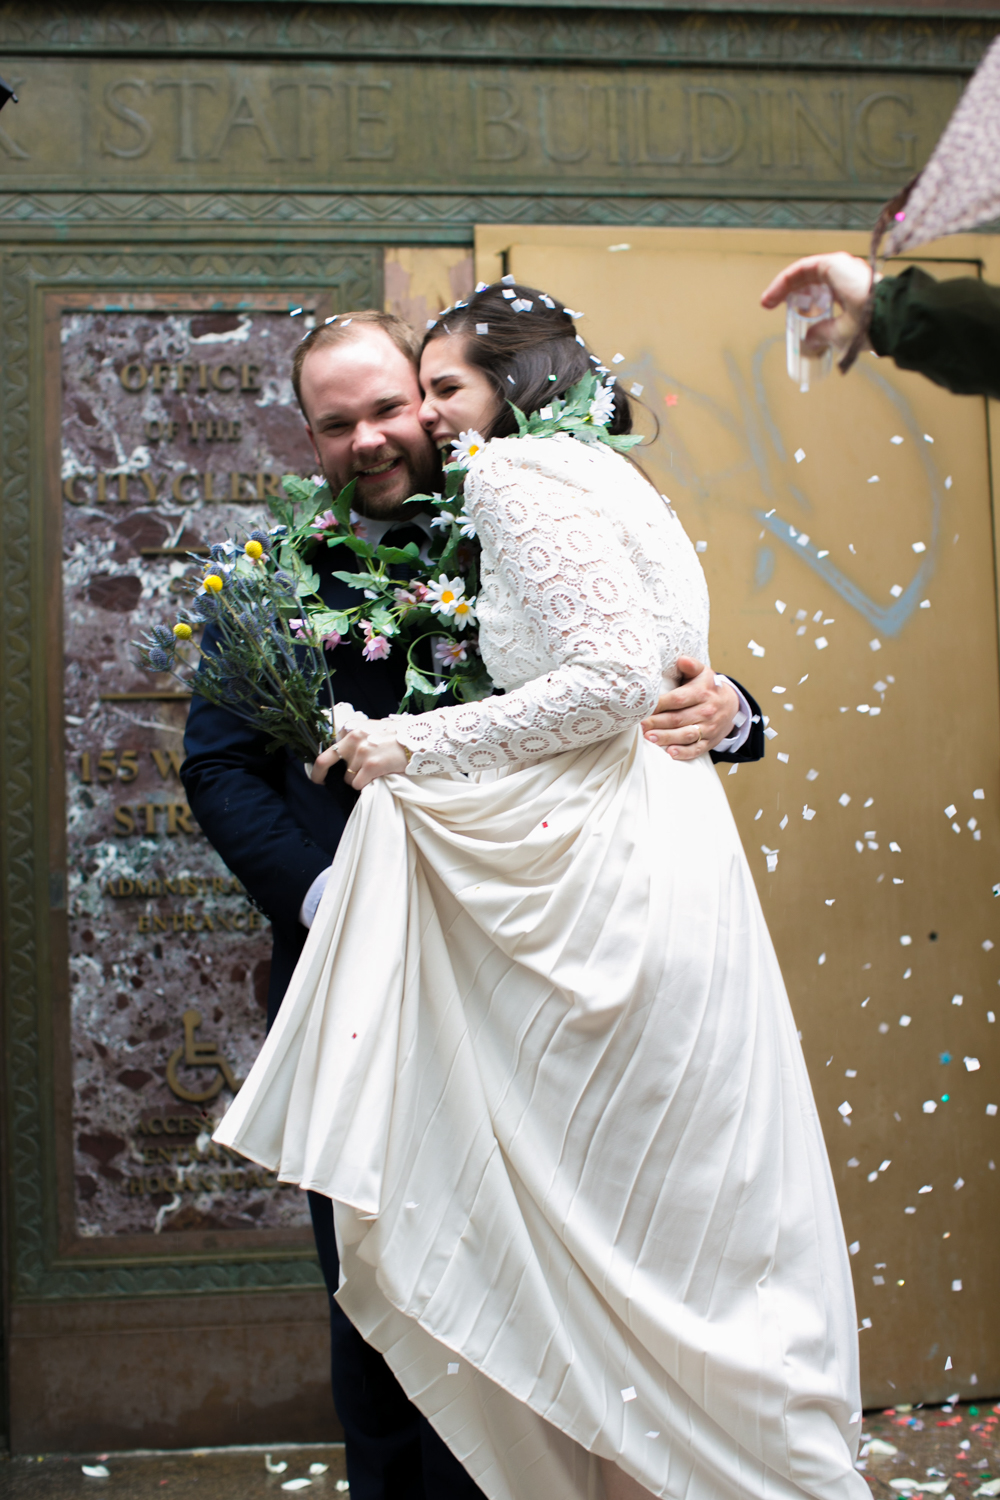 NYC Bride and groom celebrate their elopement